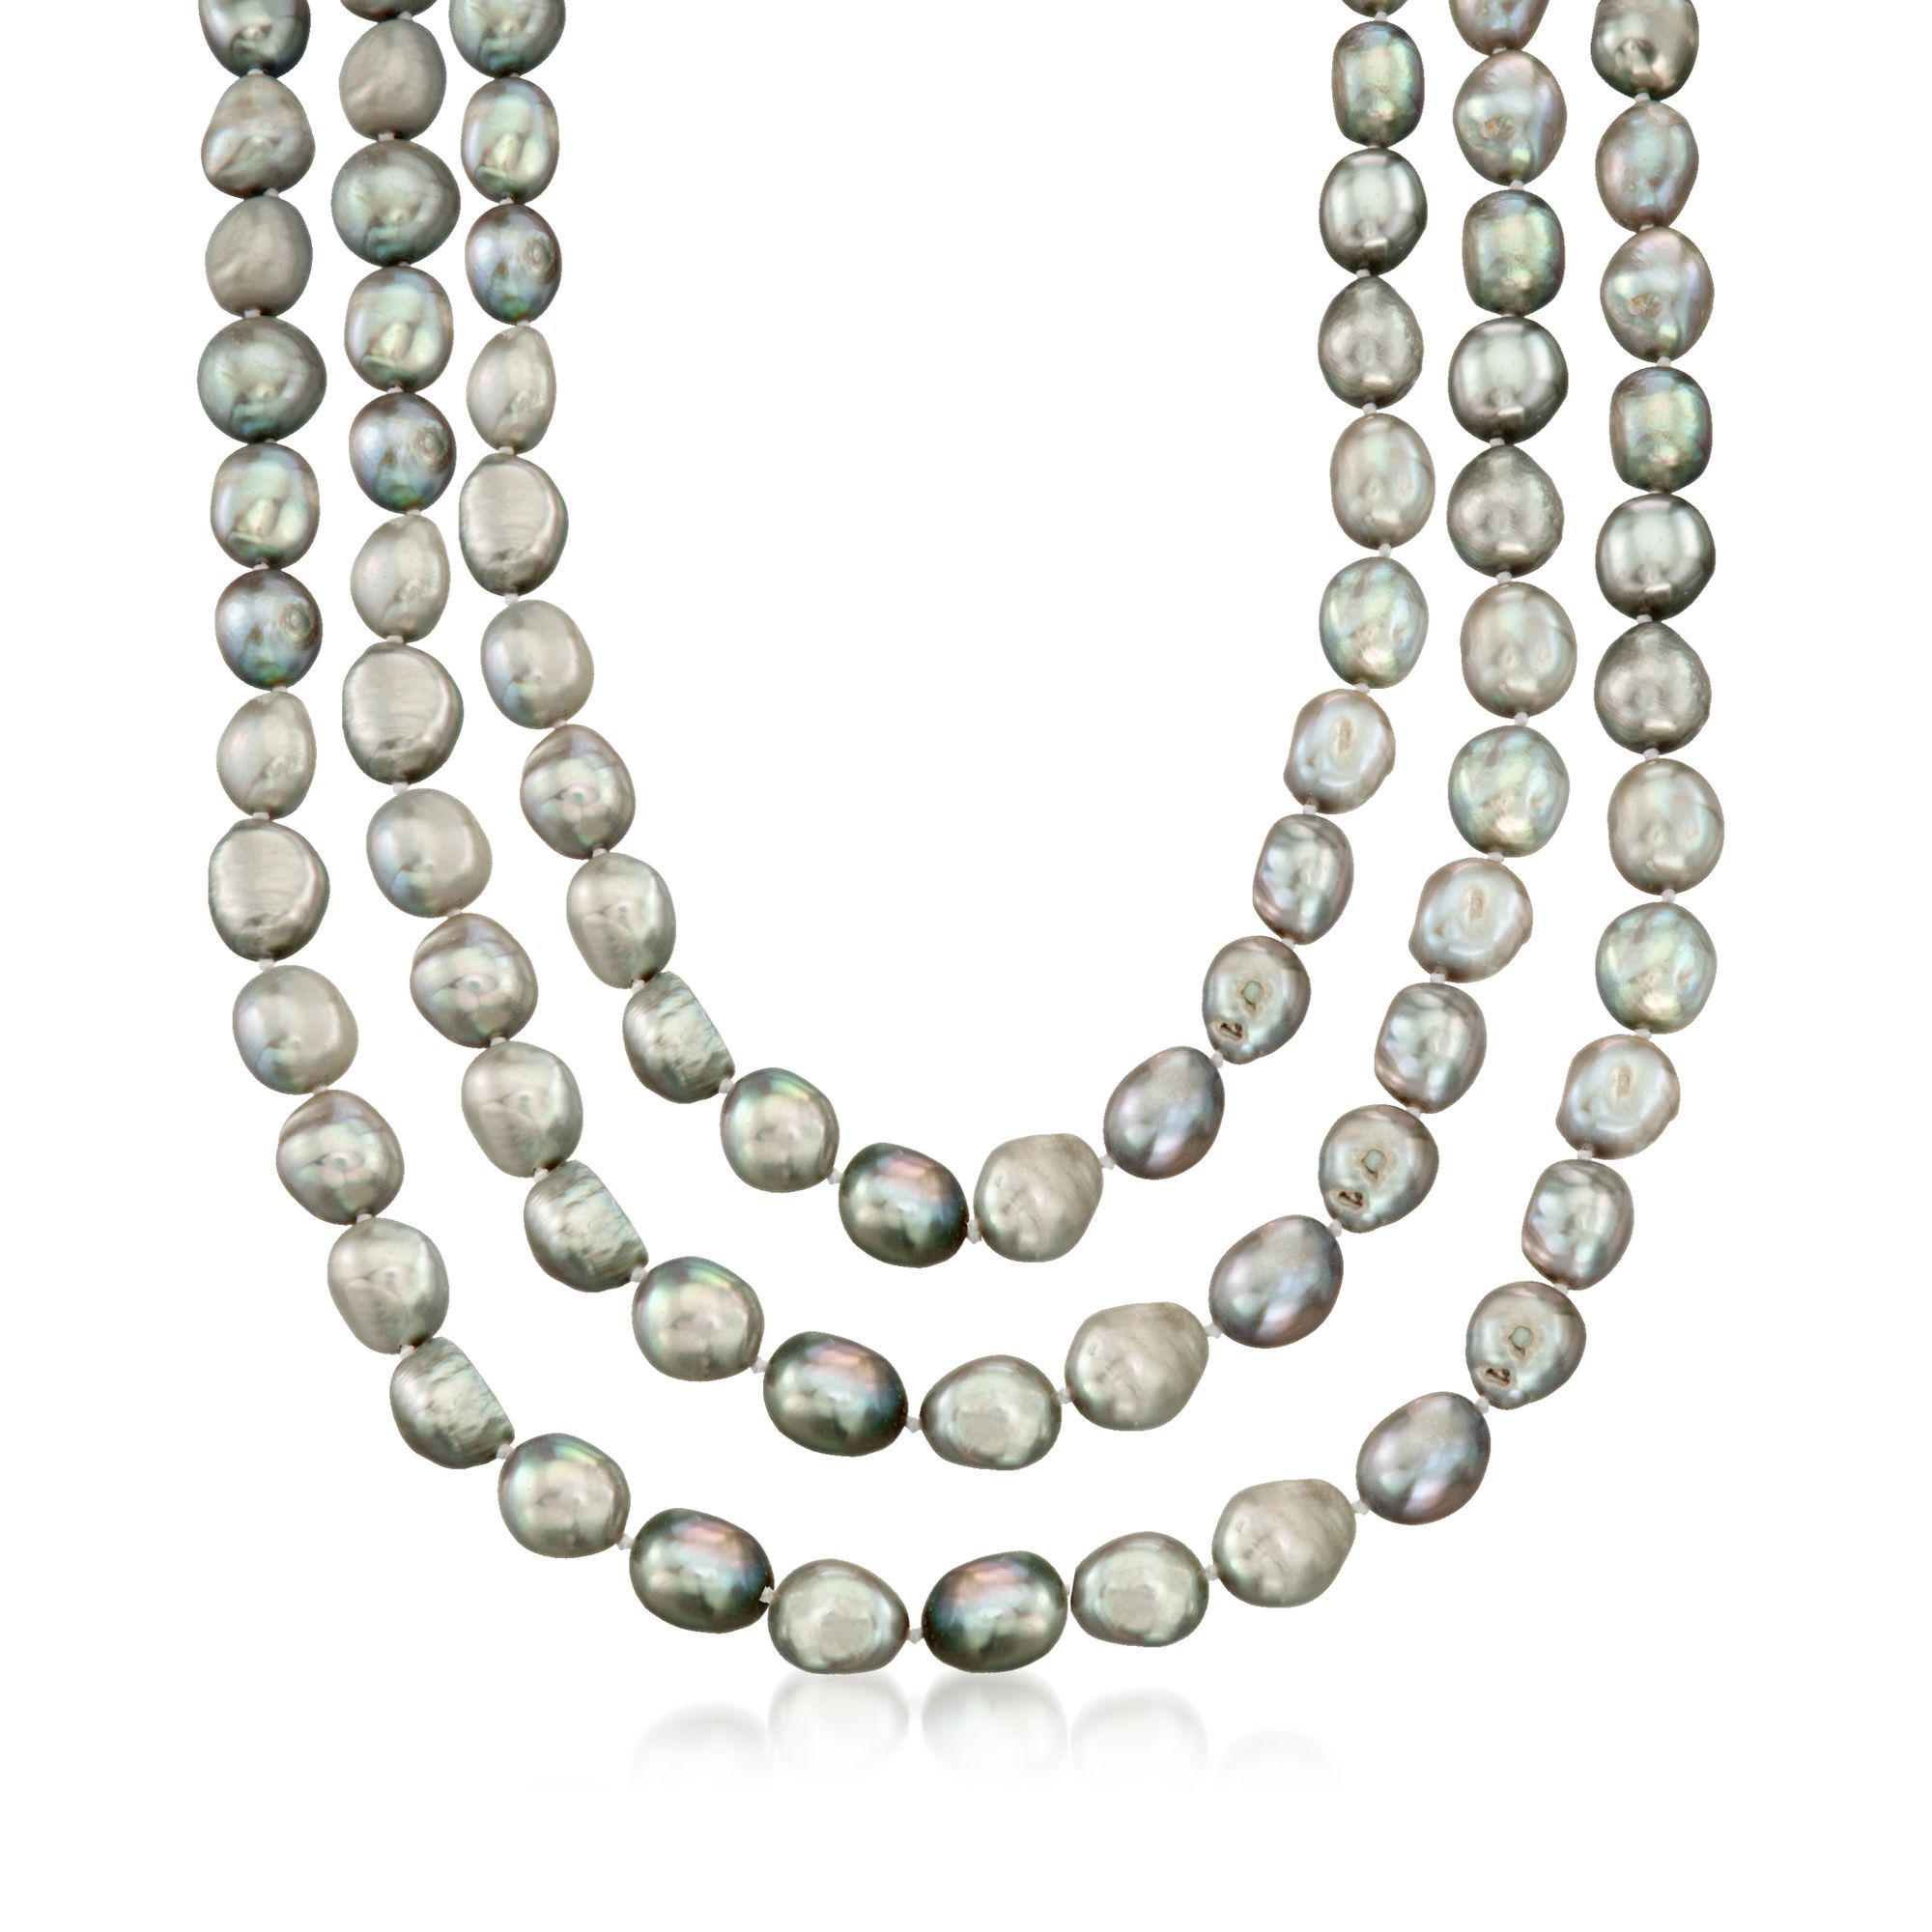 Naturel 10-11 Mm White Freshwater Cultured Pearl Necklace 60/""